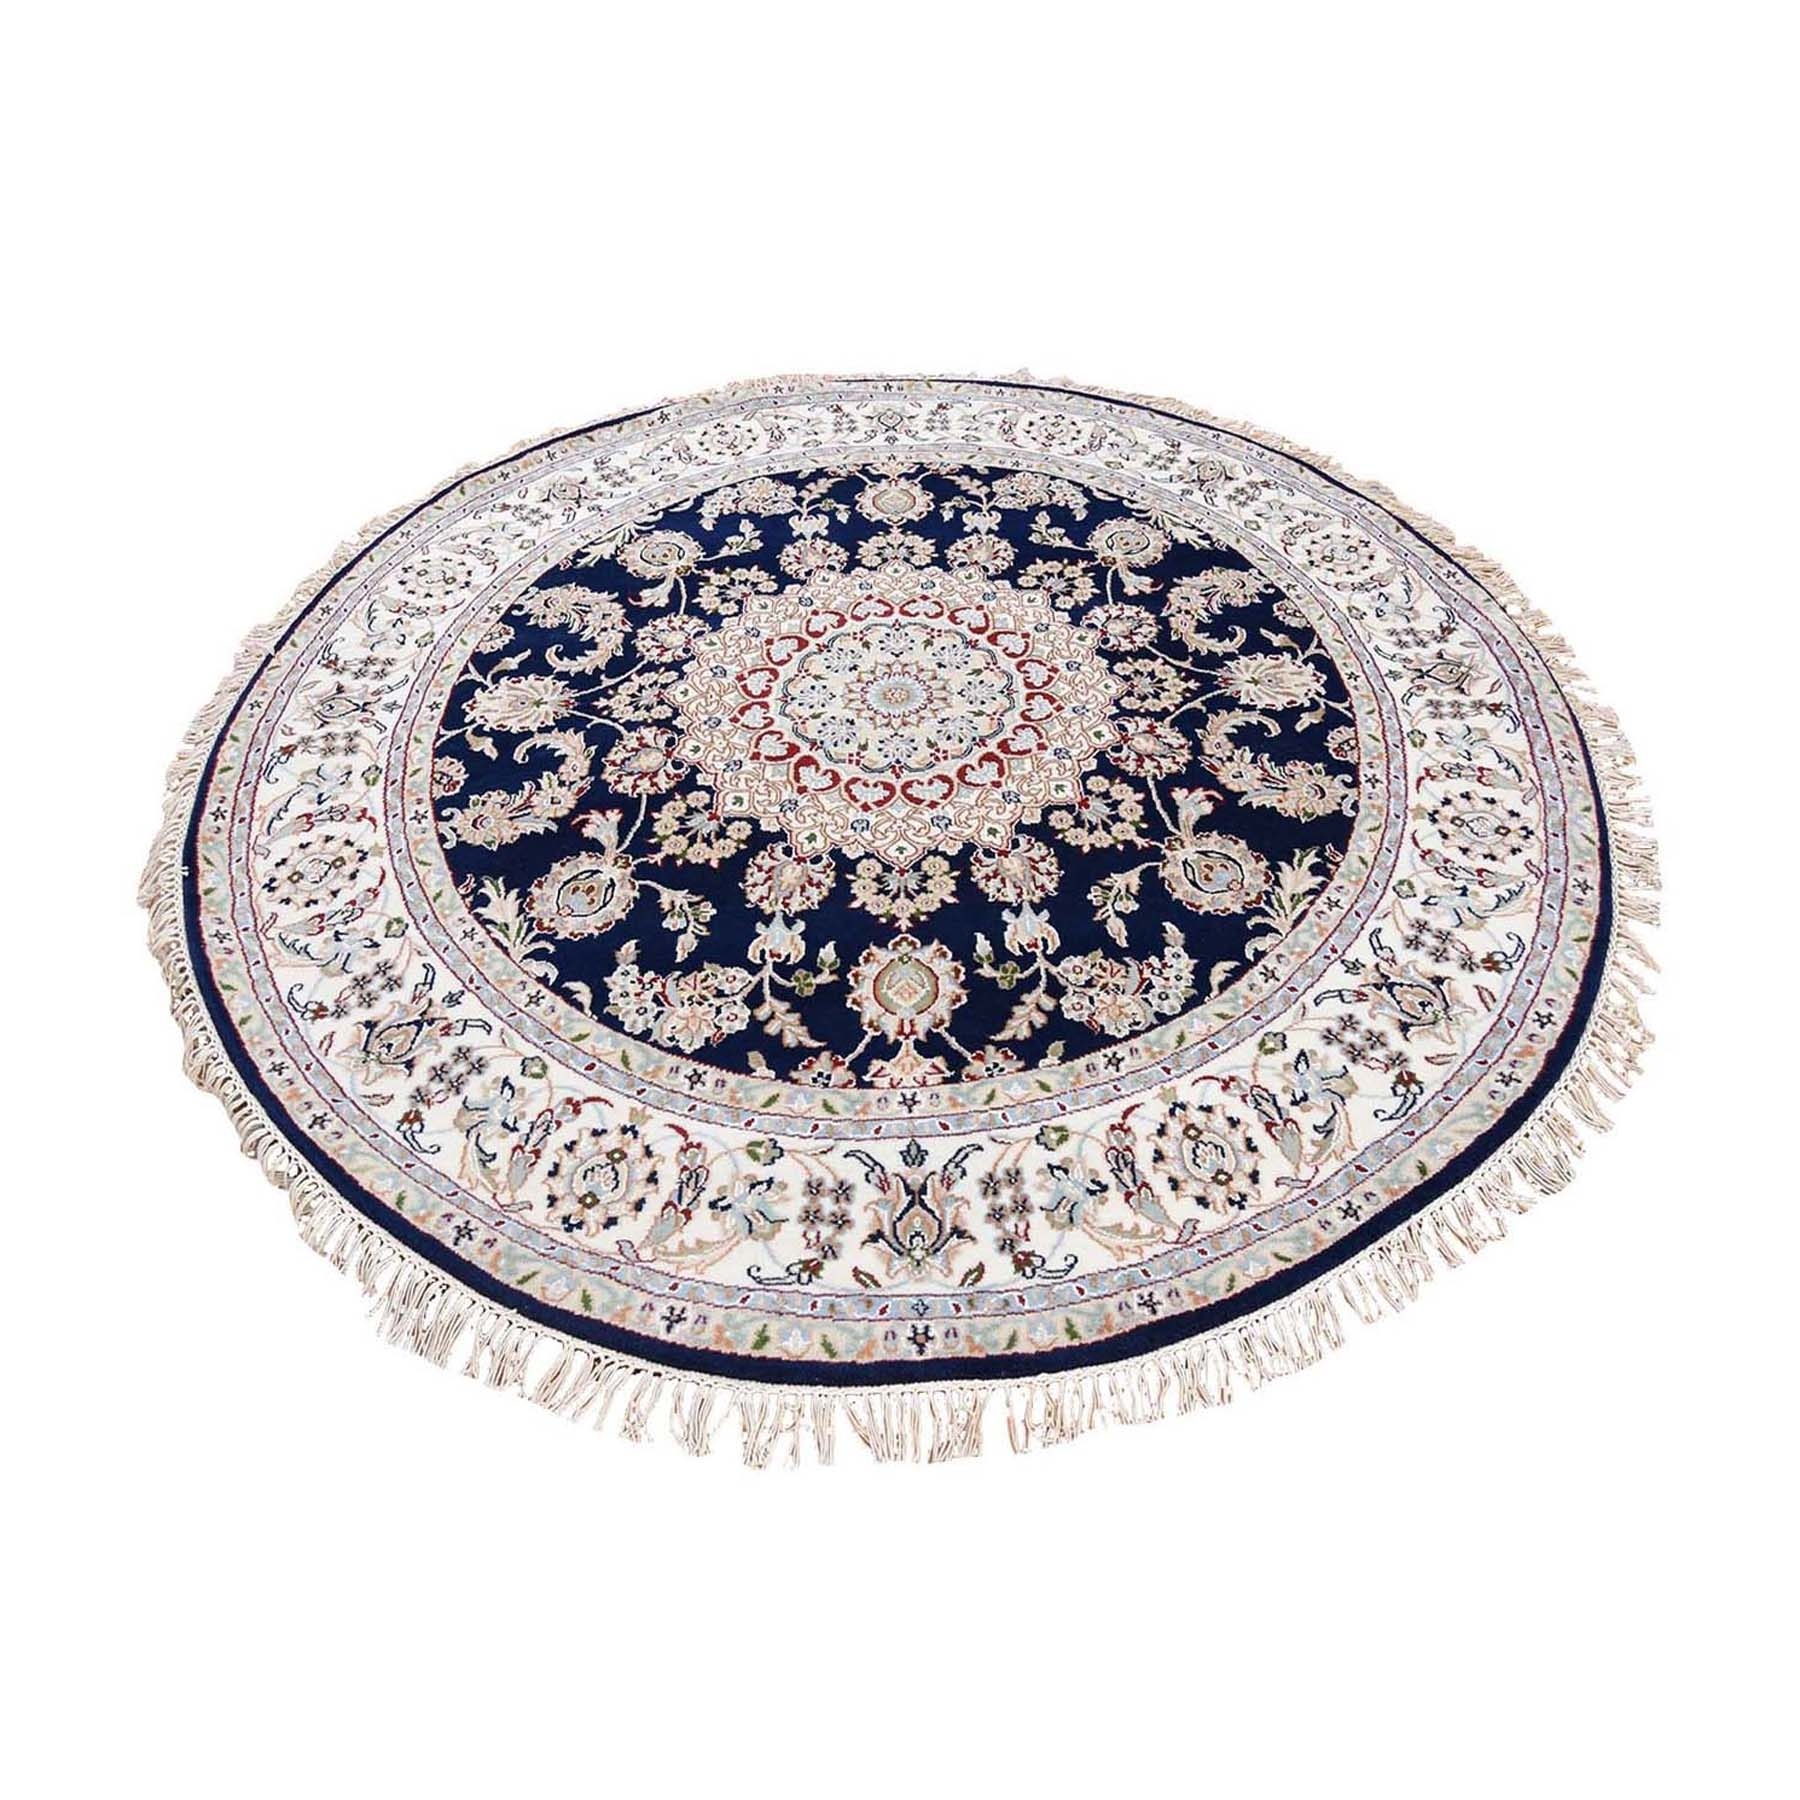 Pirniakan Collection Hand Knotted Blue Rug No: 1119986